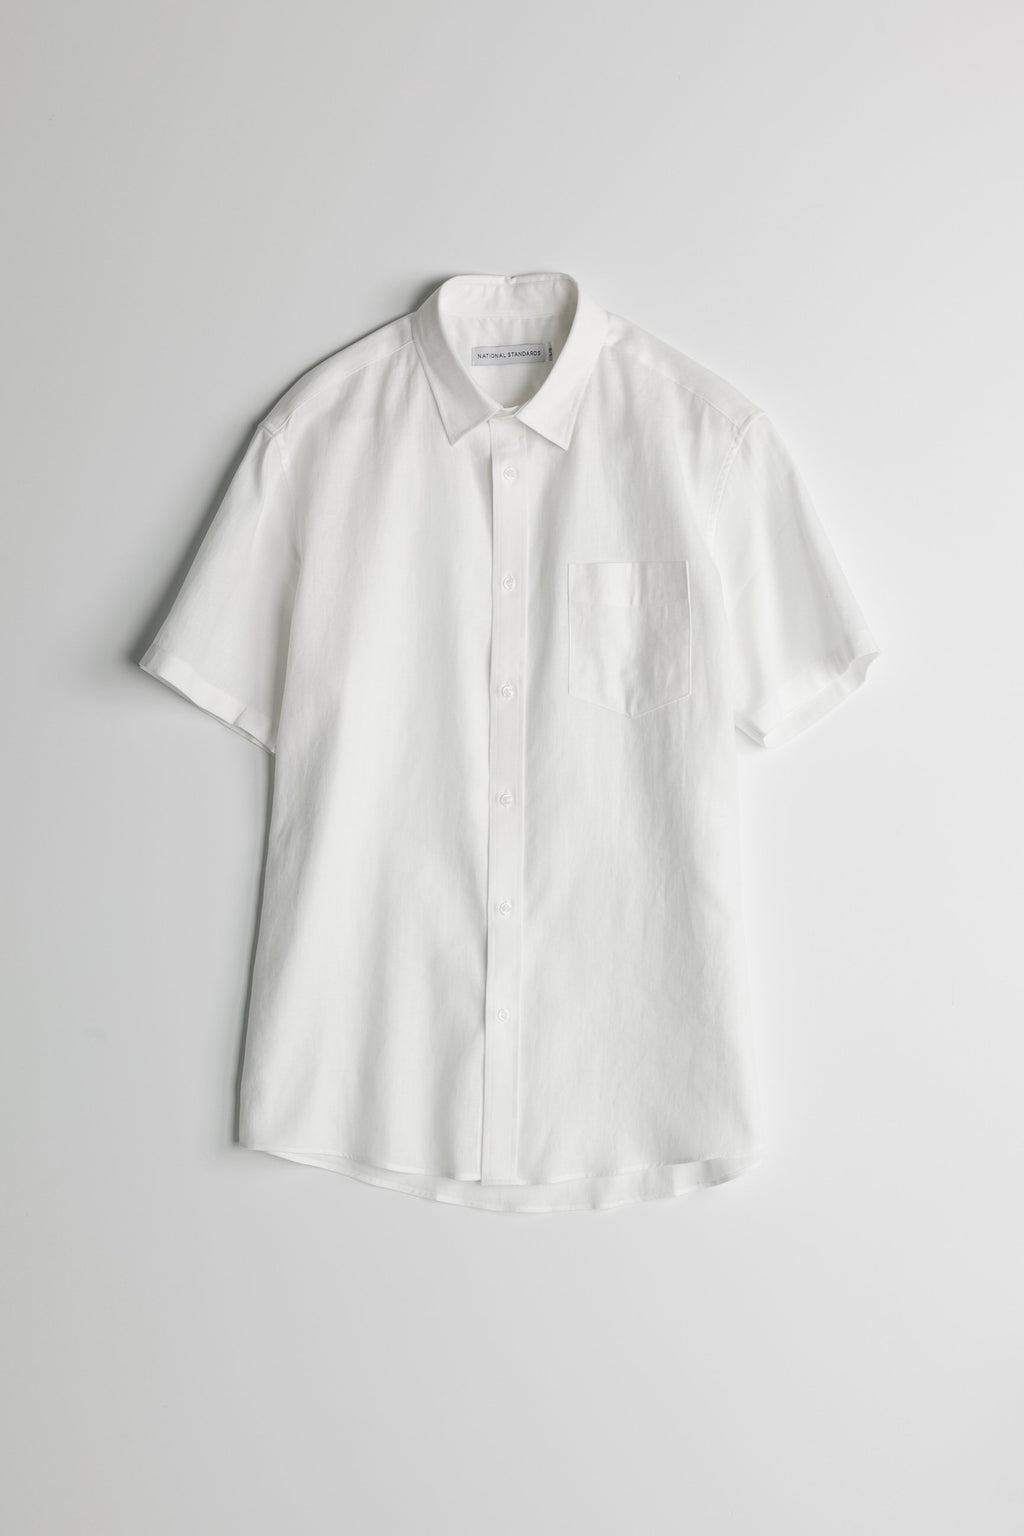 japanese-dyed-twill-in-white 01